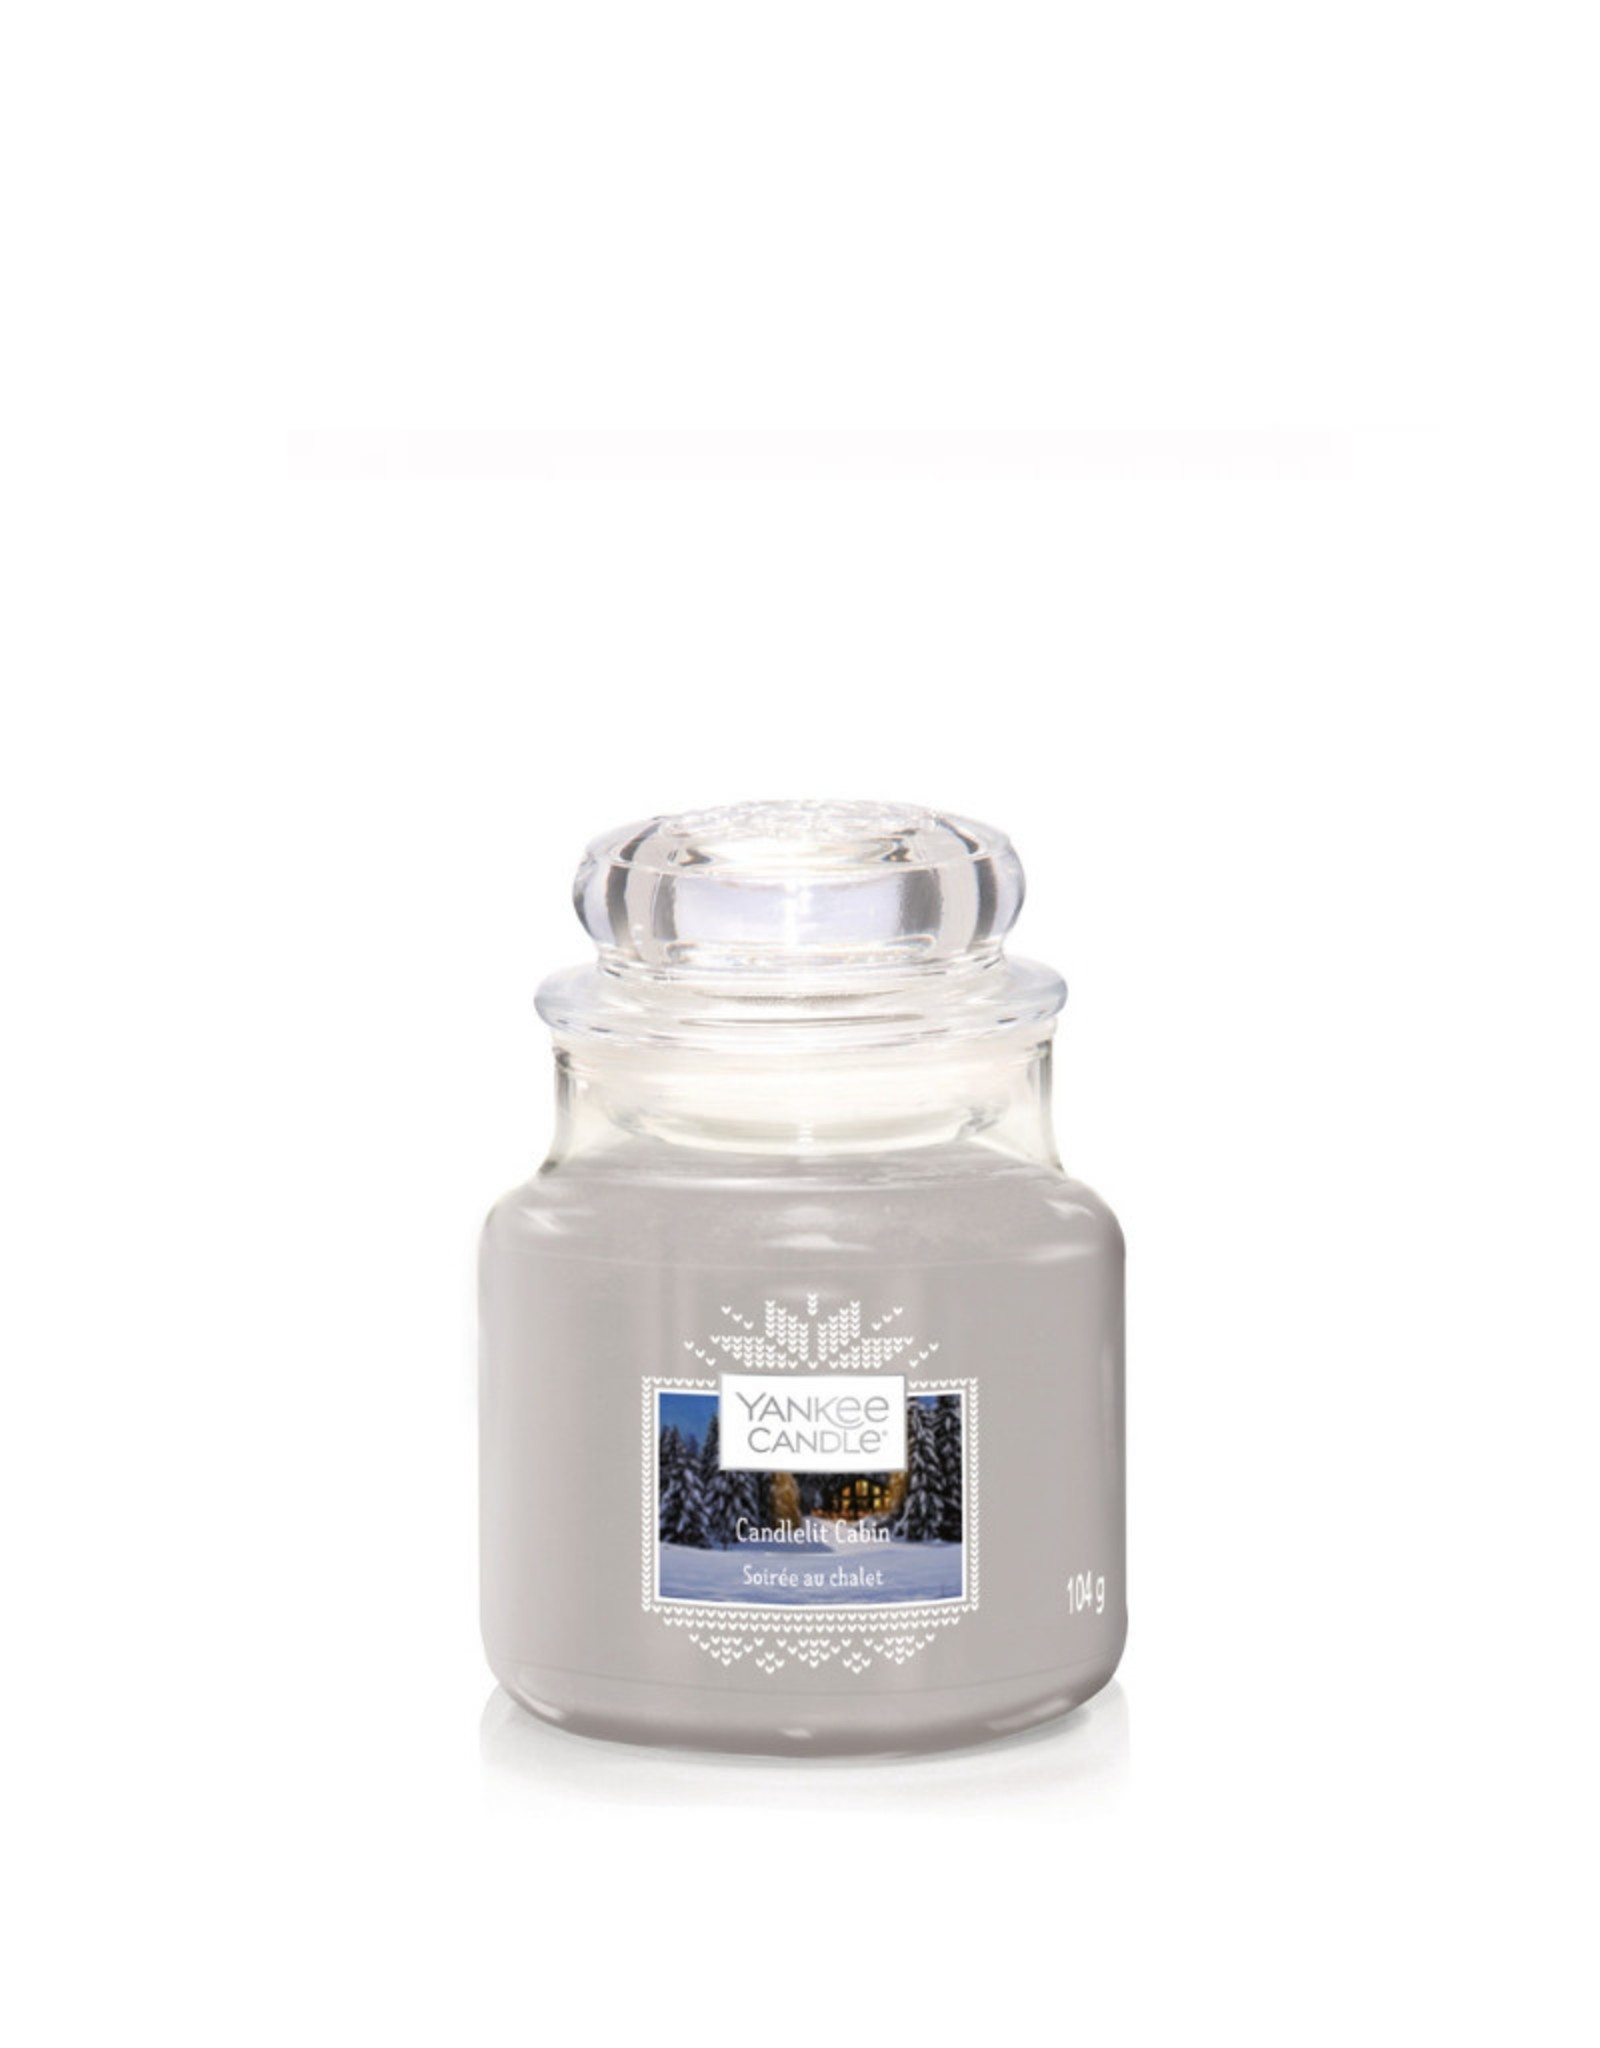 Yankee Candle Candlelit Cabin - Small Jar